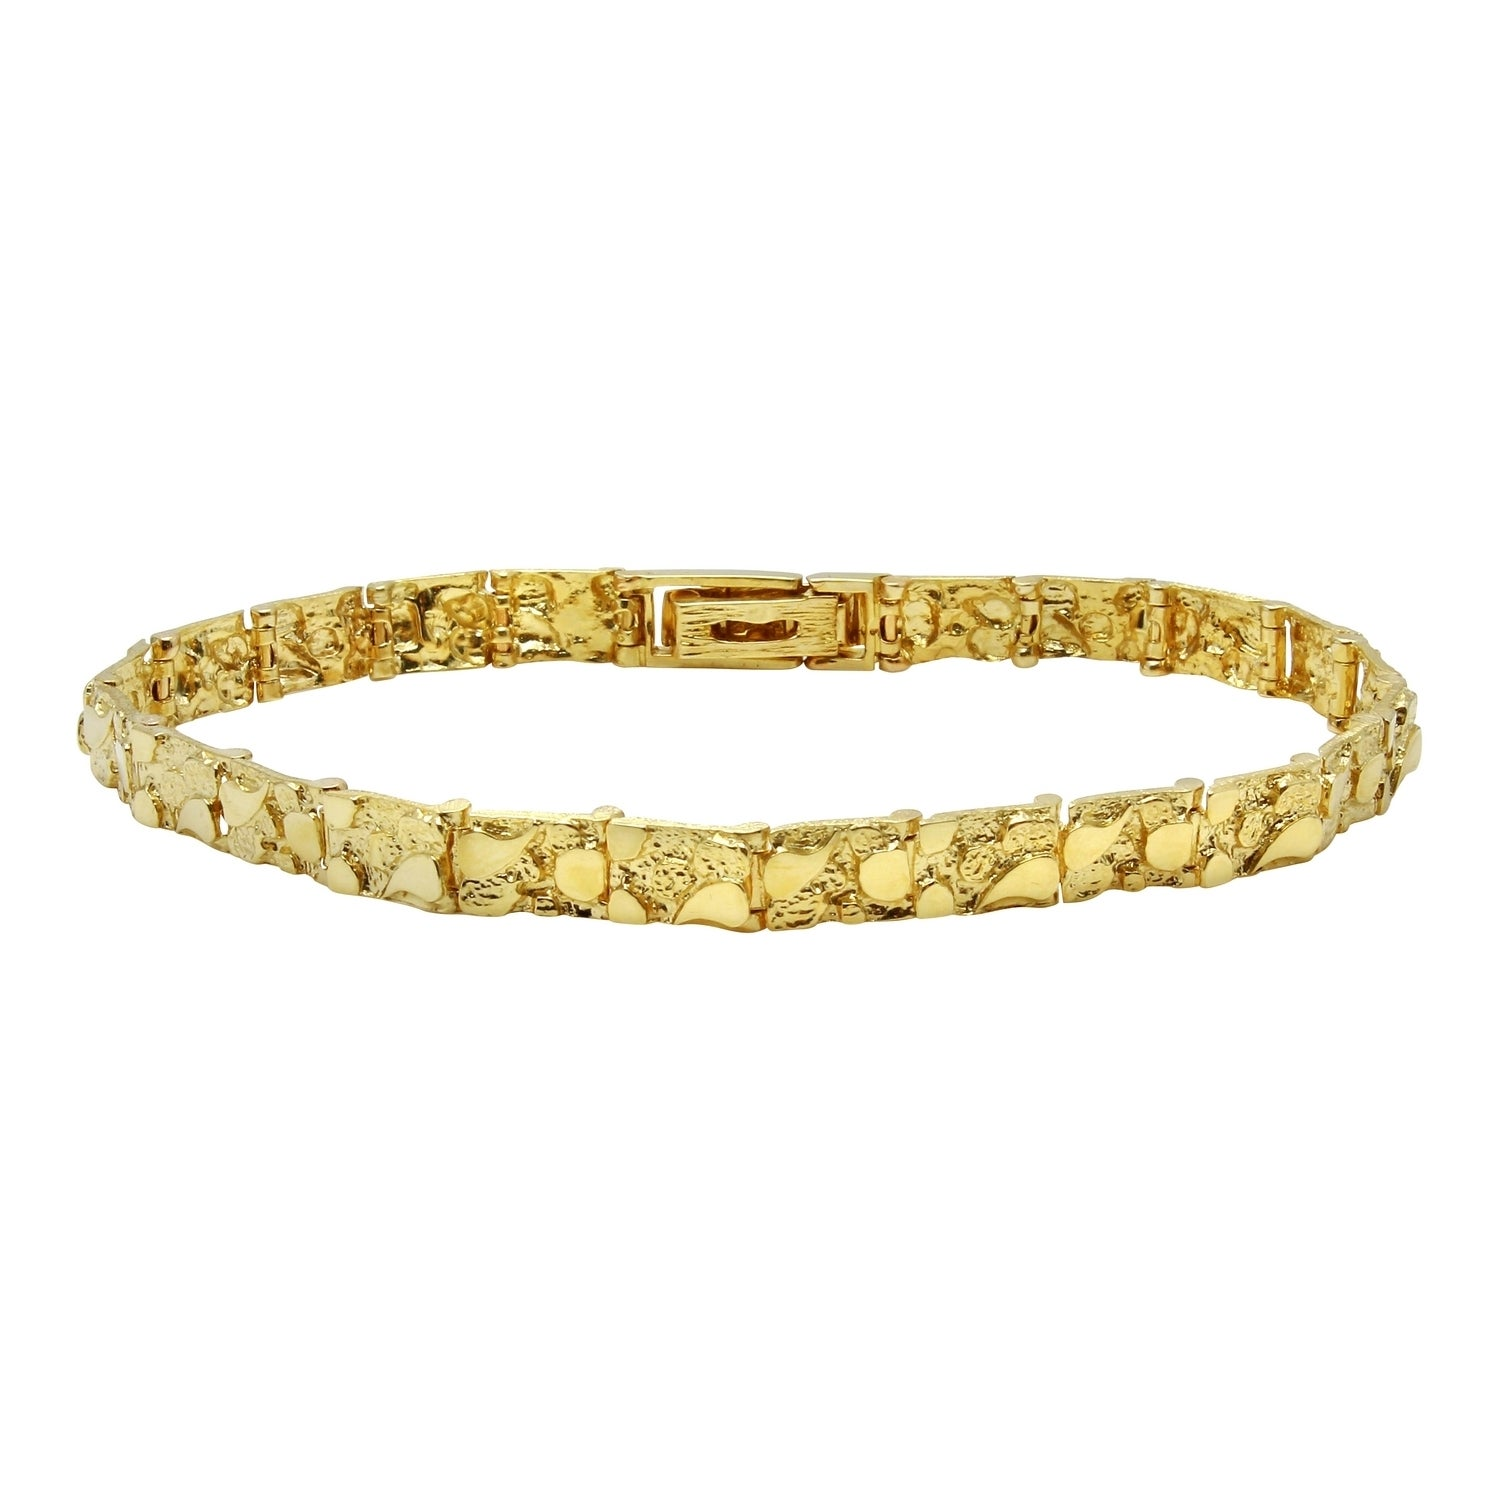 jewelry bracelet bracelets link yellow gold karat x bangles amazon bangle dp com